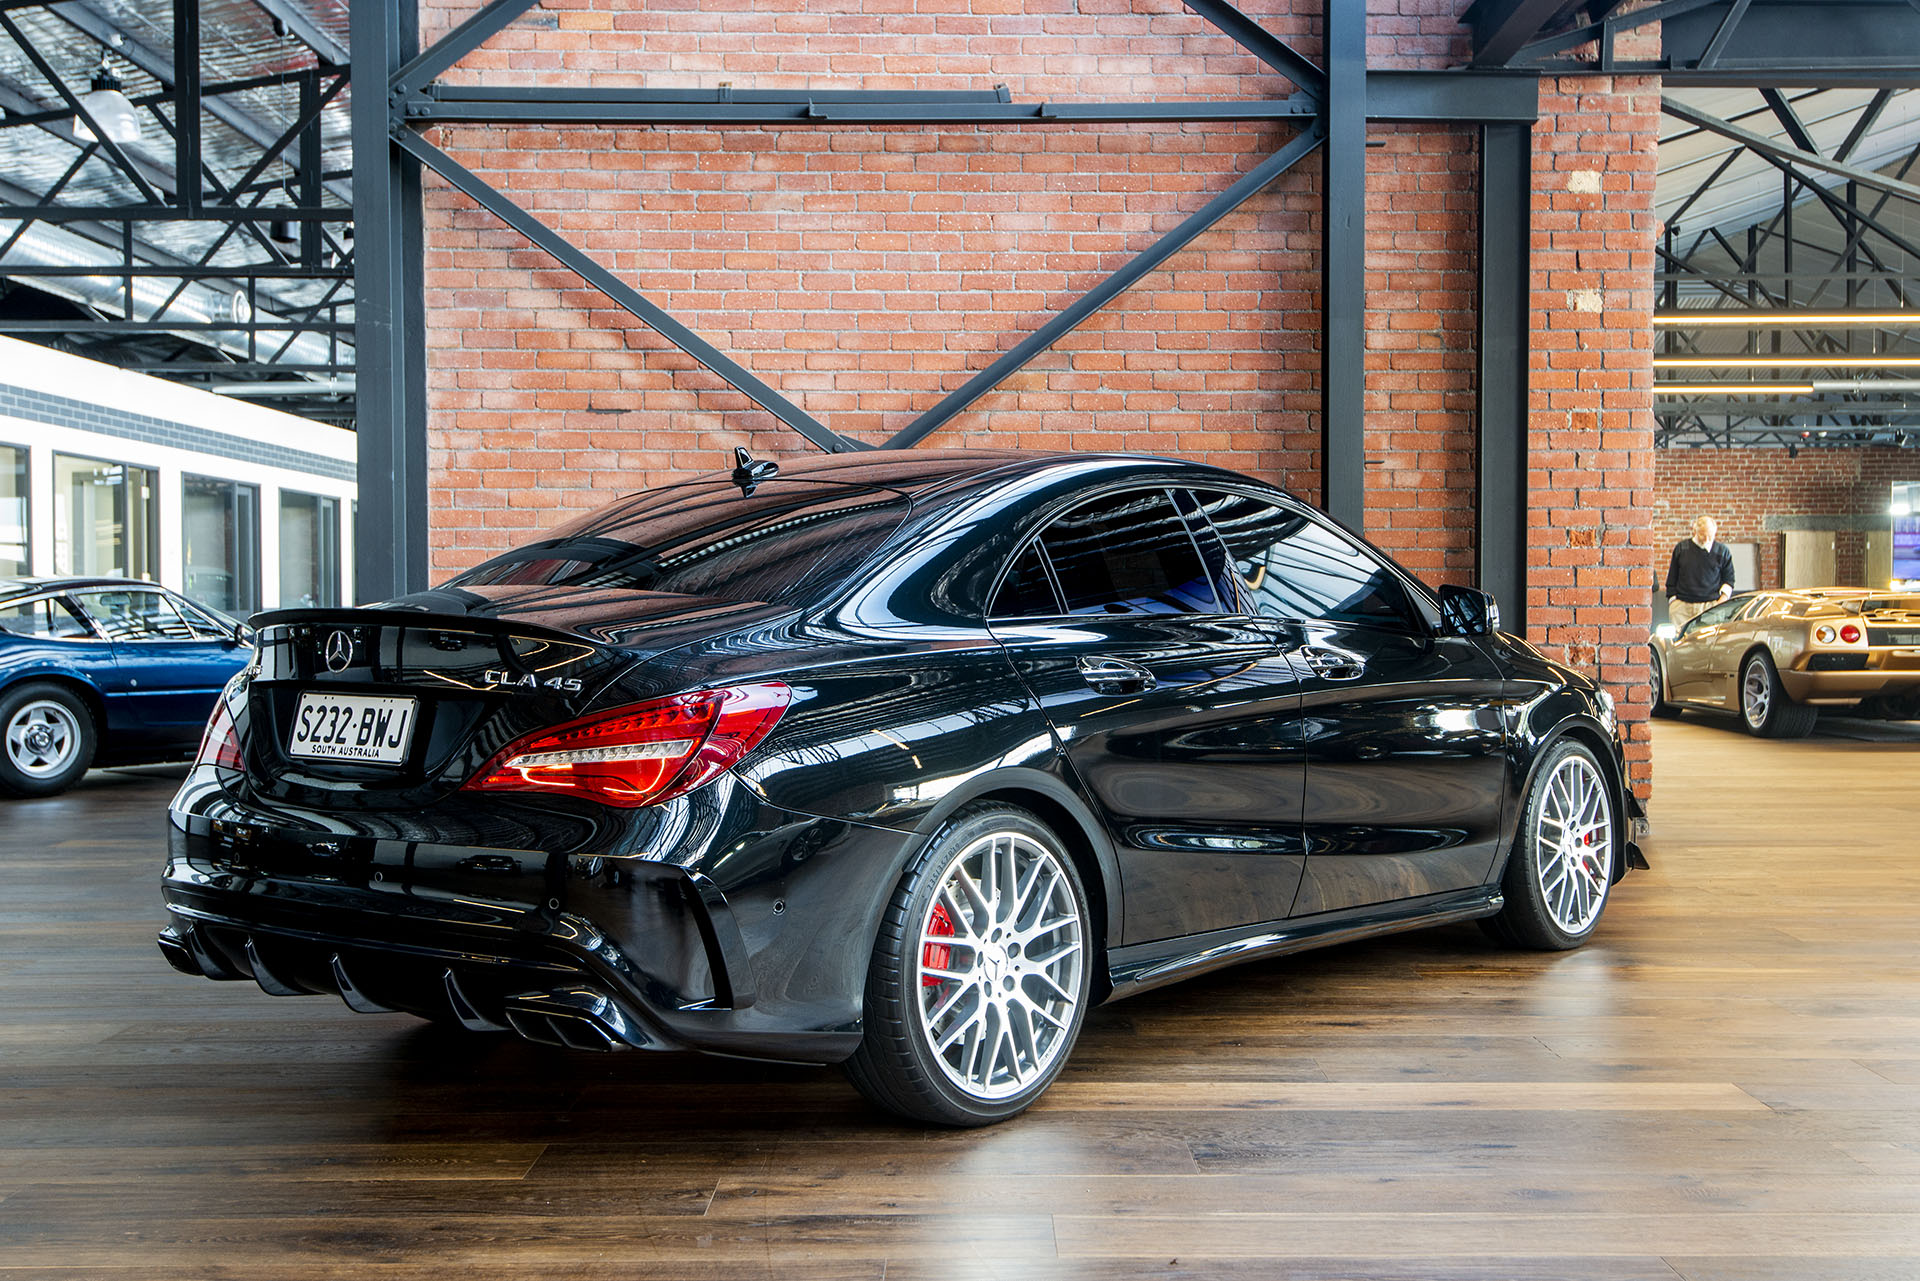 Mercedes Cla 45 Amg For Sale >> 2016 Mercedes-Benz CLA45 AMG - Richmonds - Classic and Prestige Cars - Storage and Sales ...